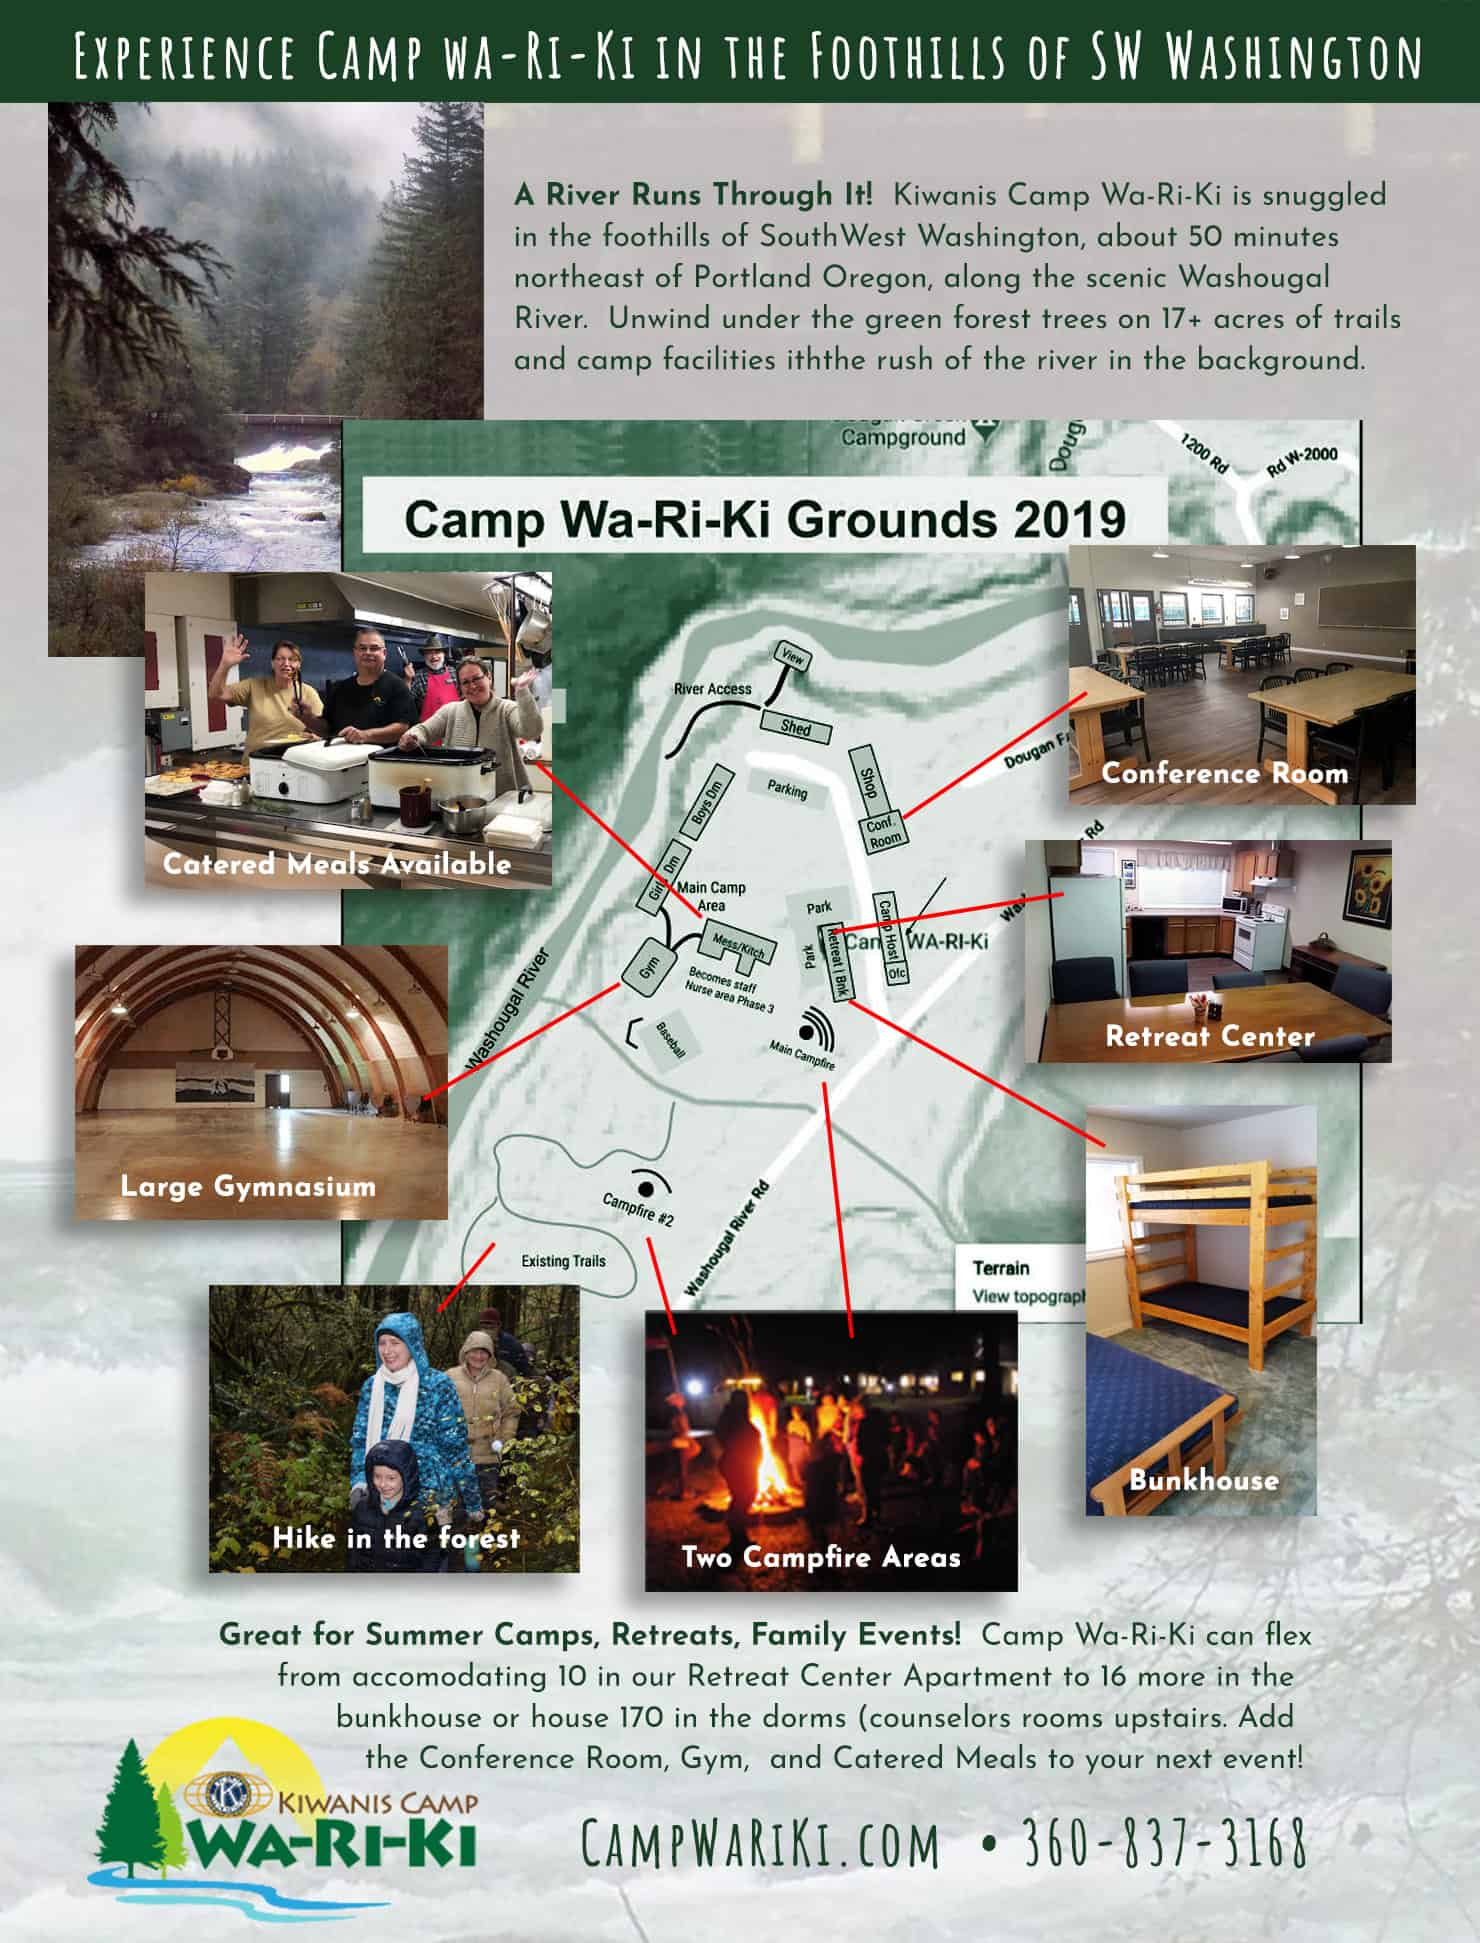 Camp Wa-Ri-Ki Grounds and Amenities